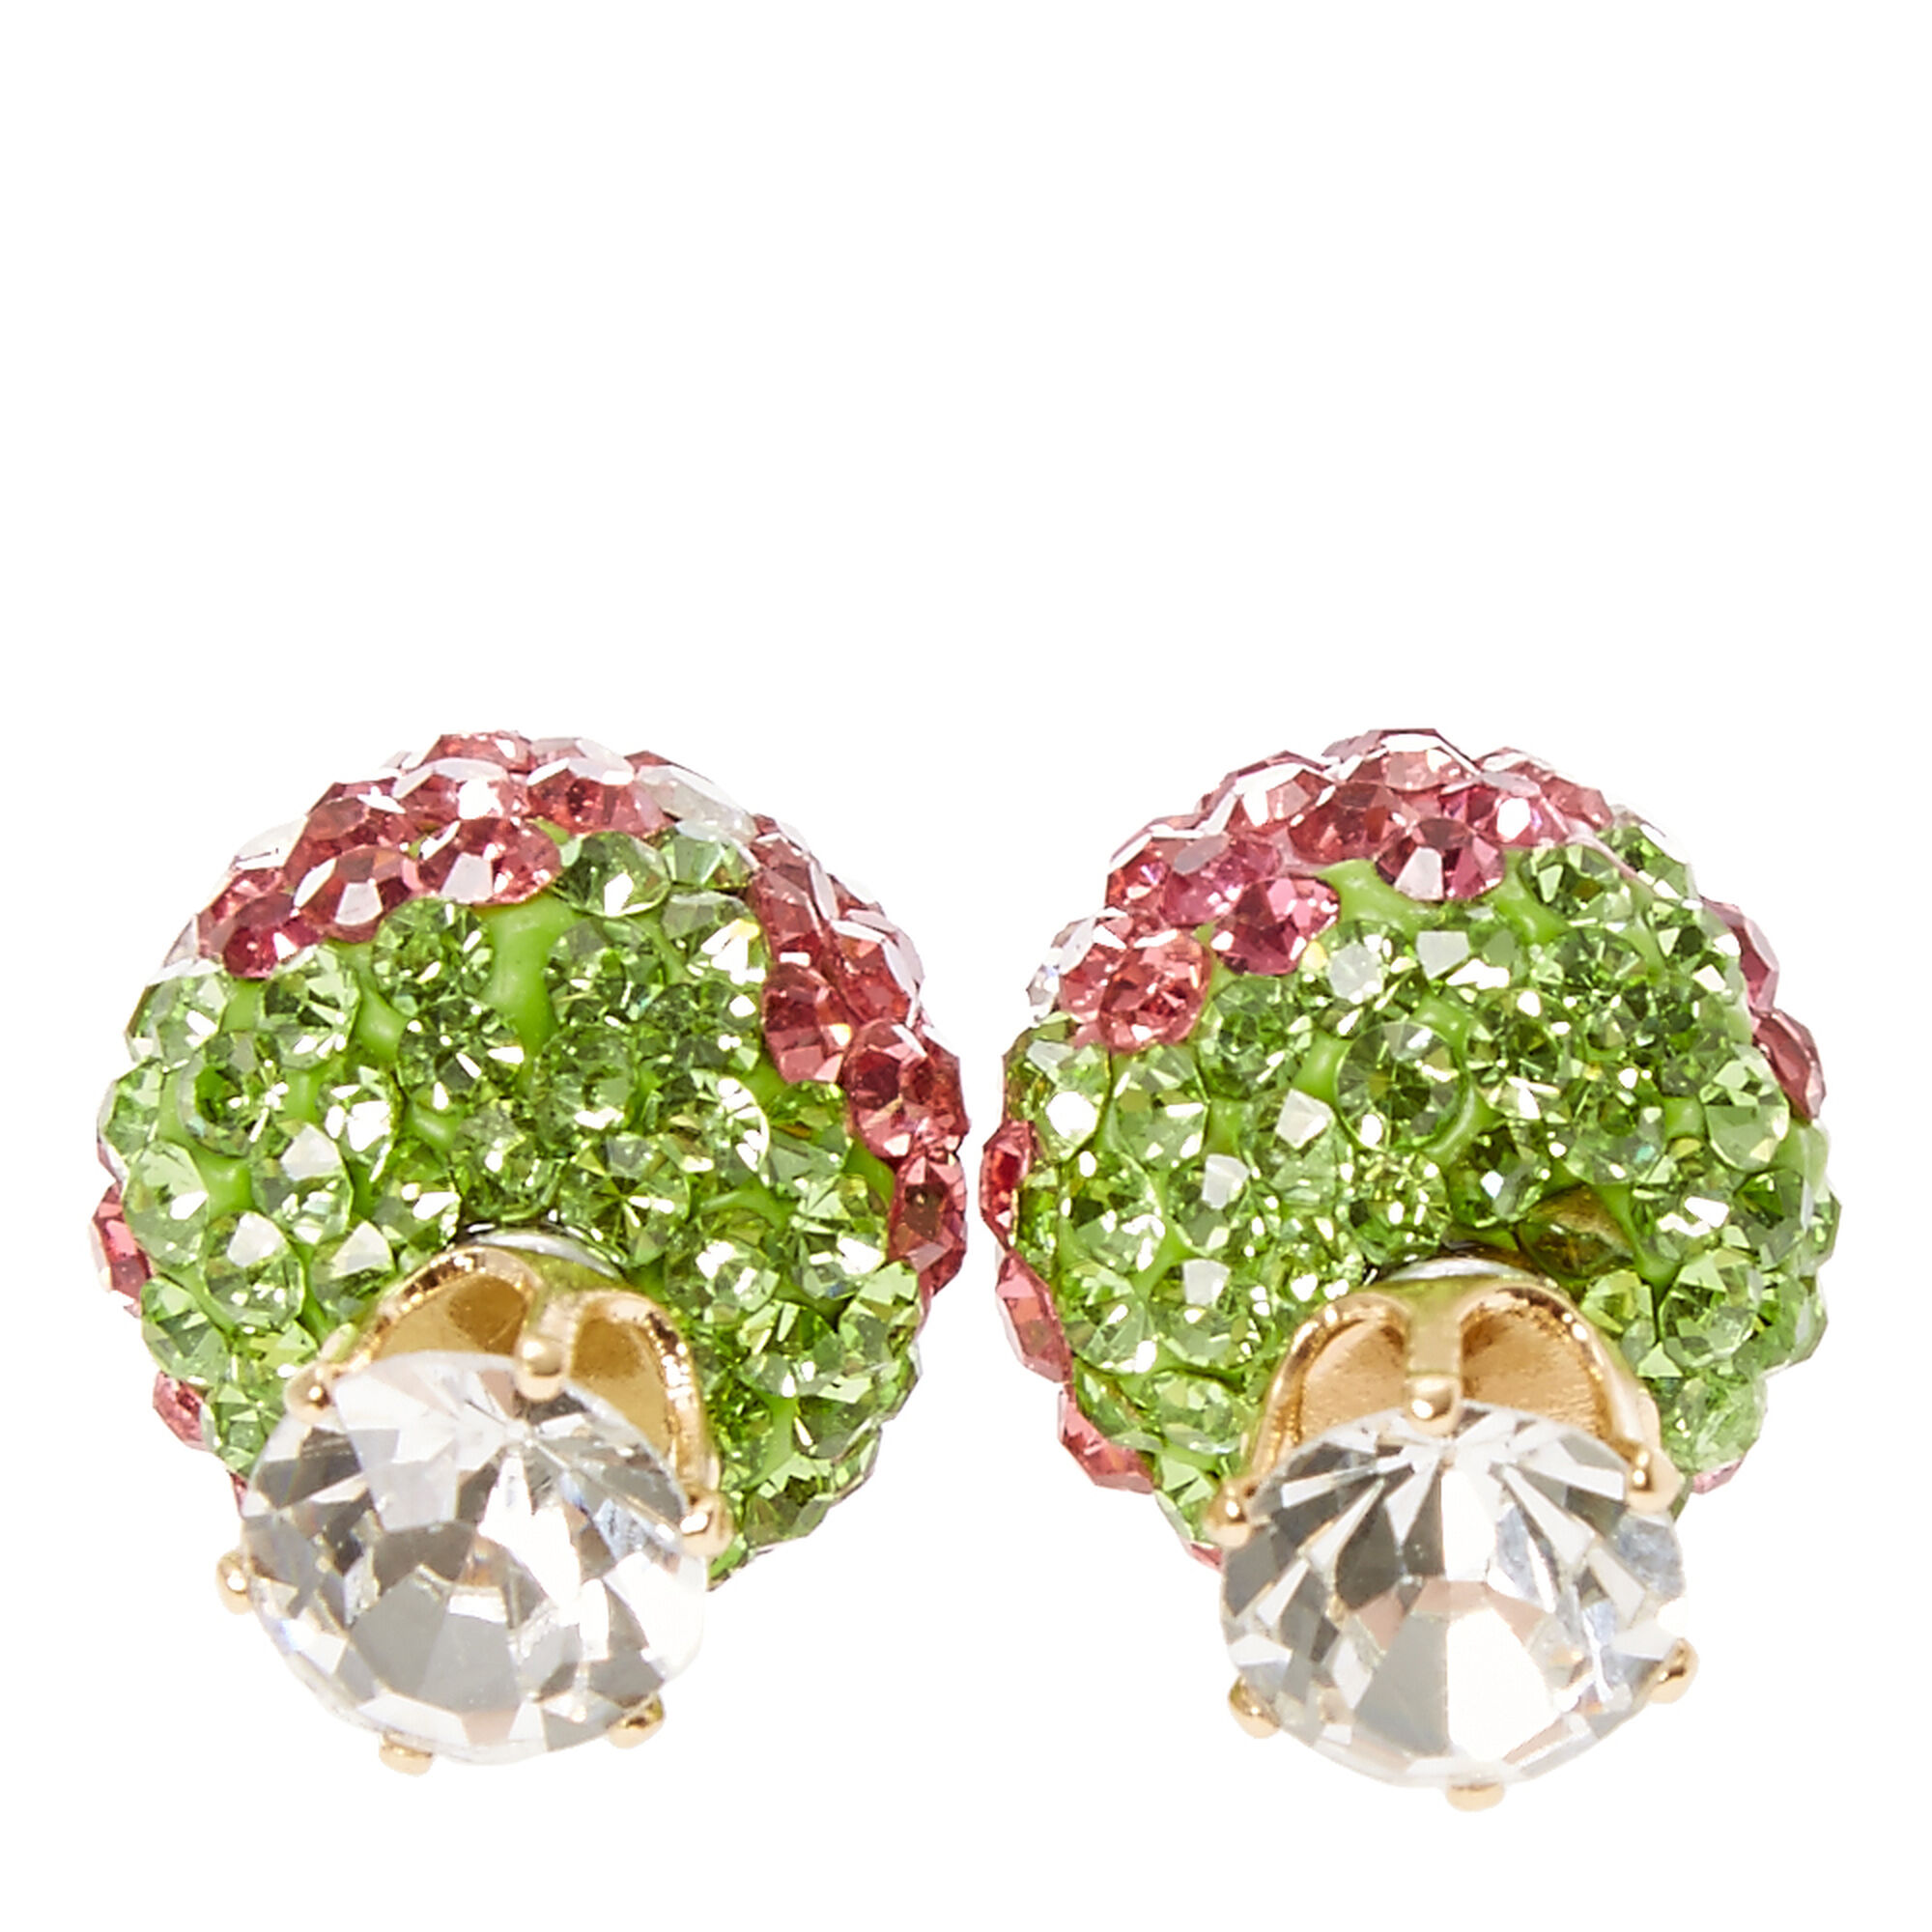 Bedazzled Strawberries Front And Back Earrings,